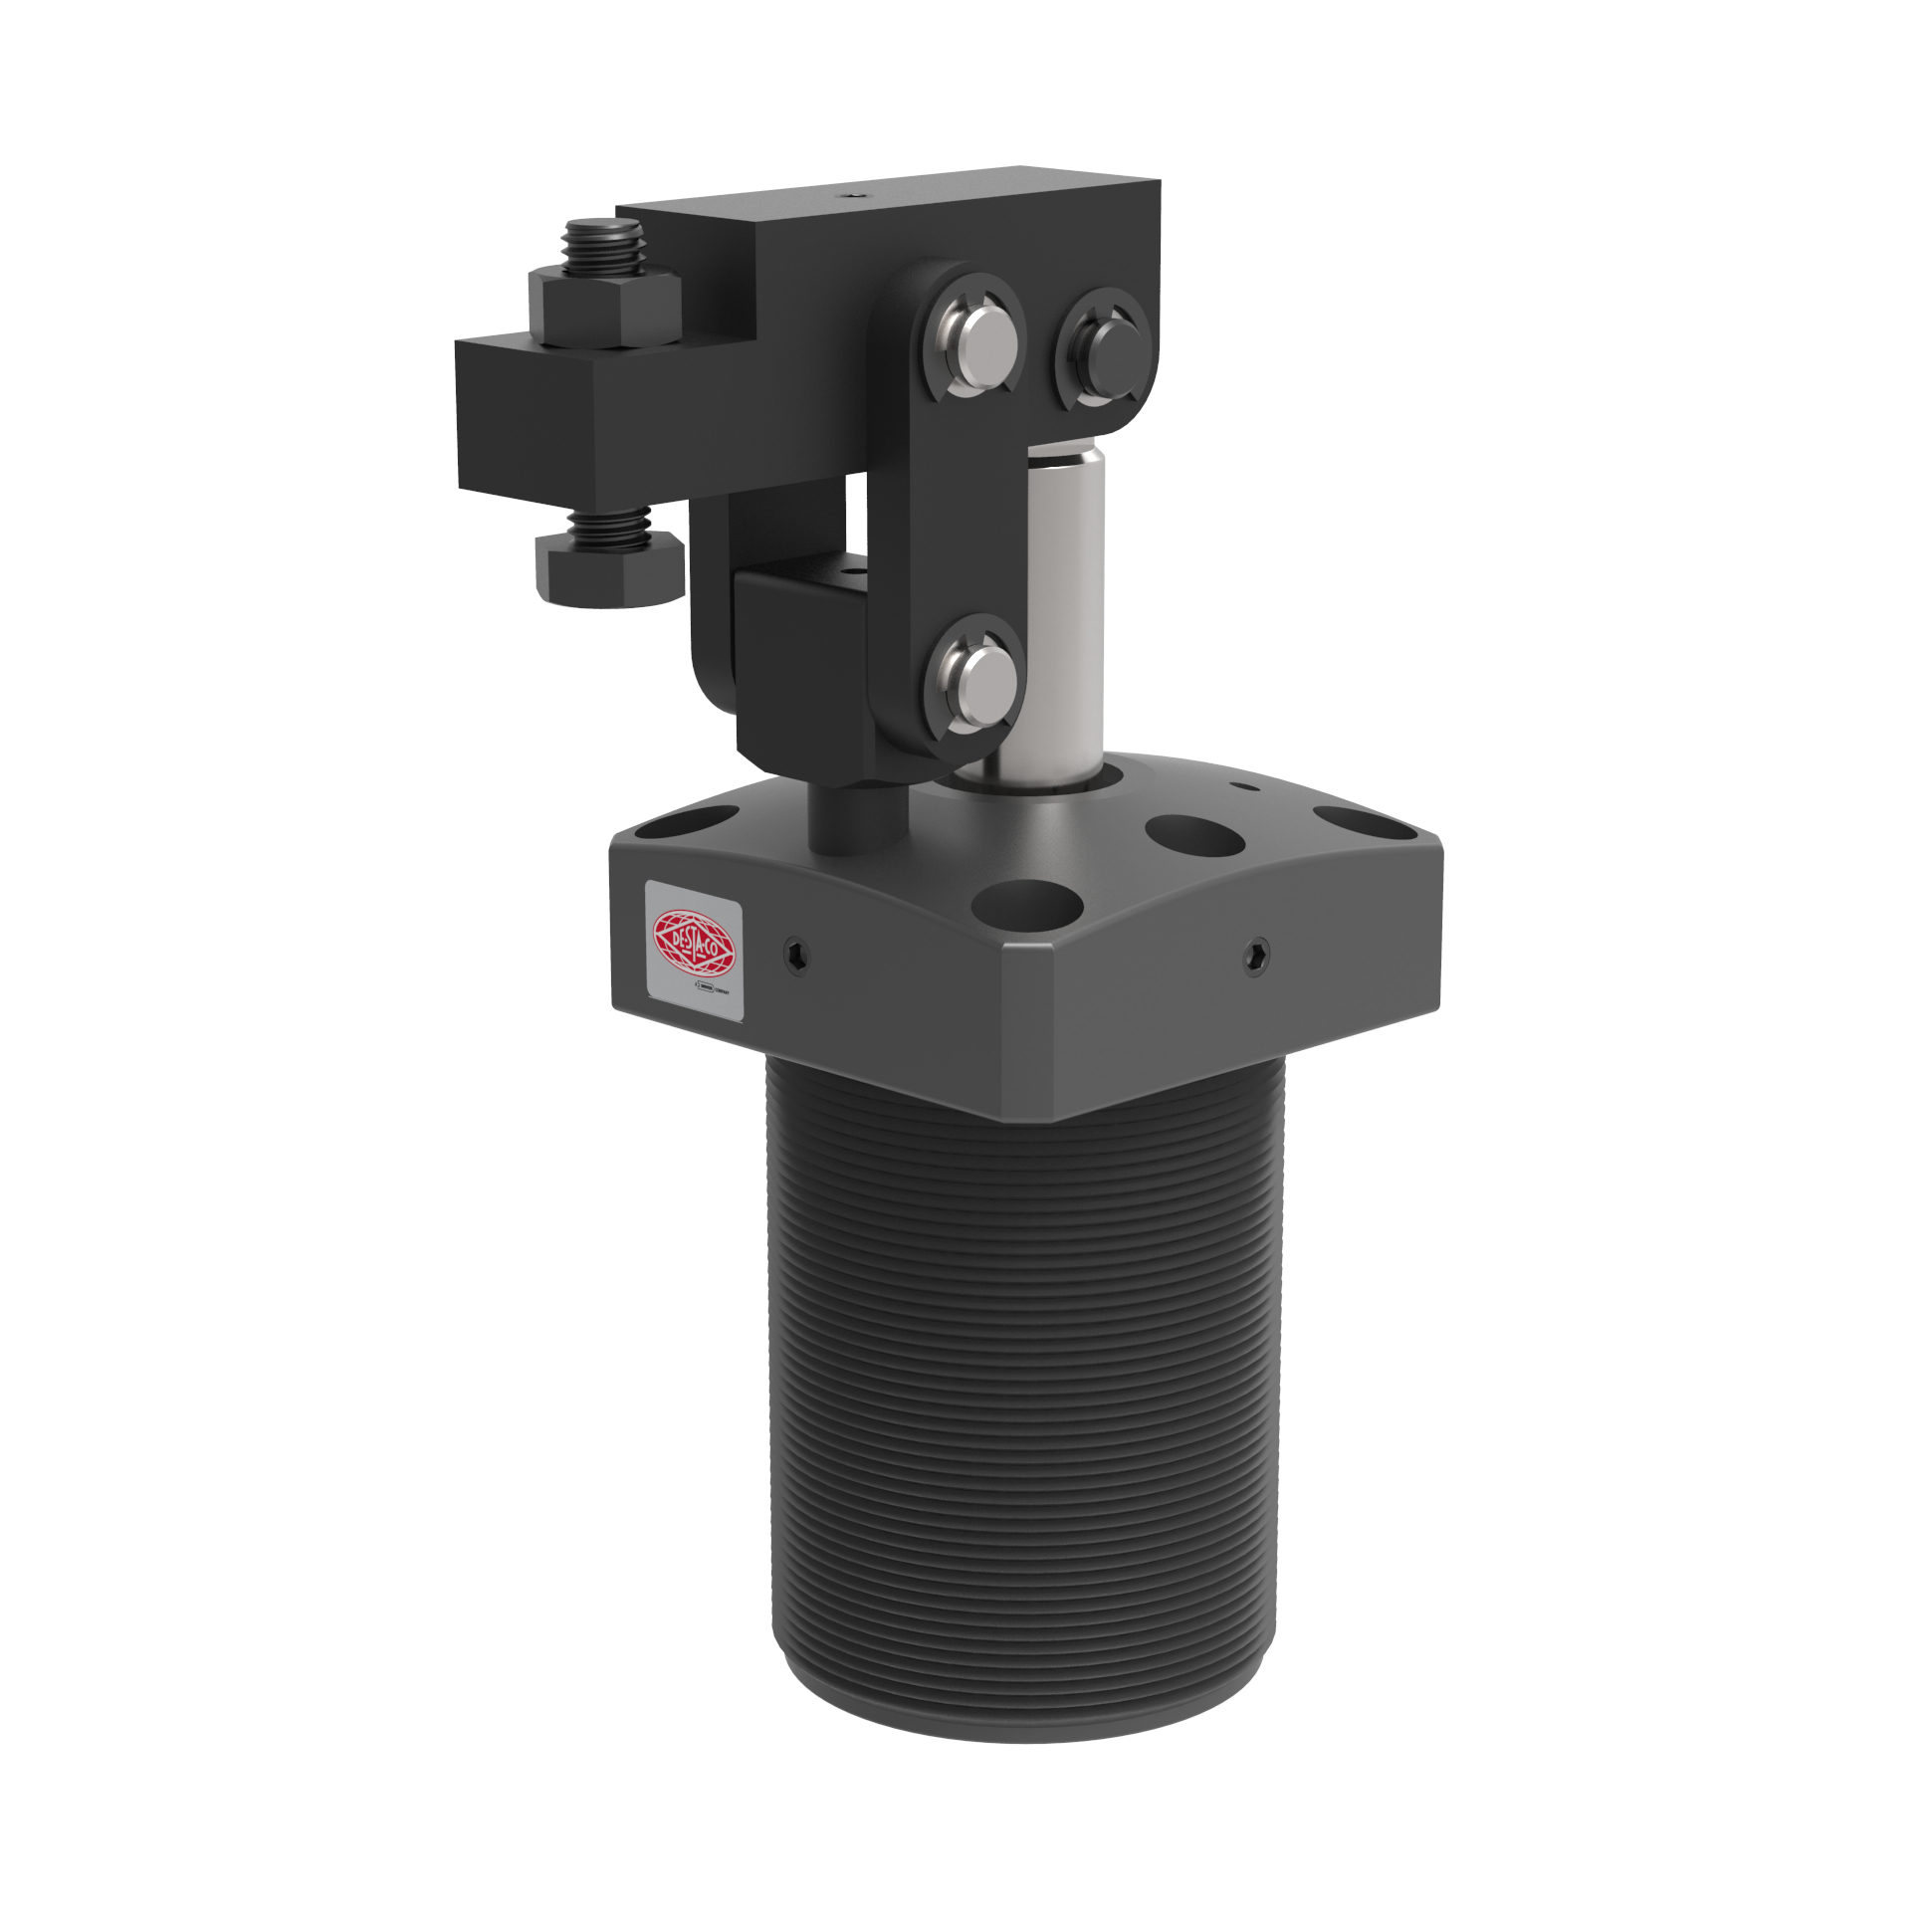 Revolutionary Compact Pneumatic Lever Clamp for Tight Spaces